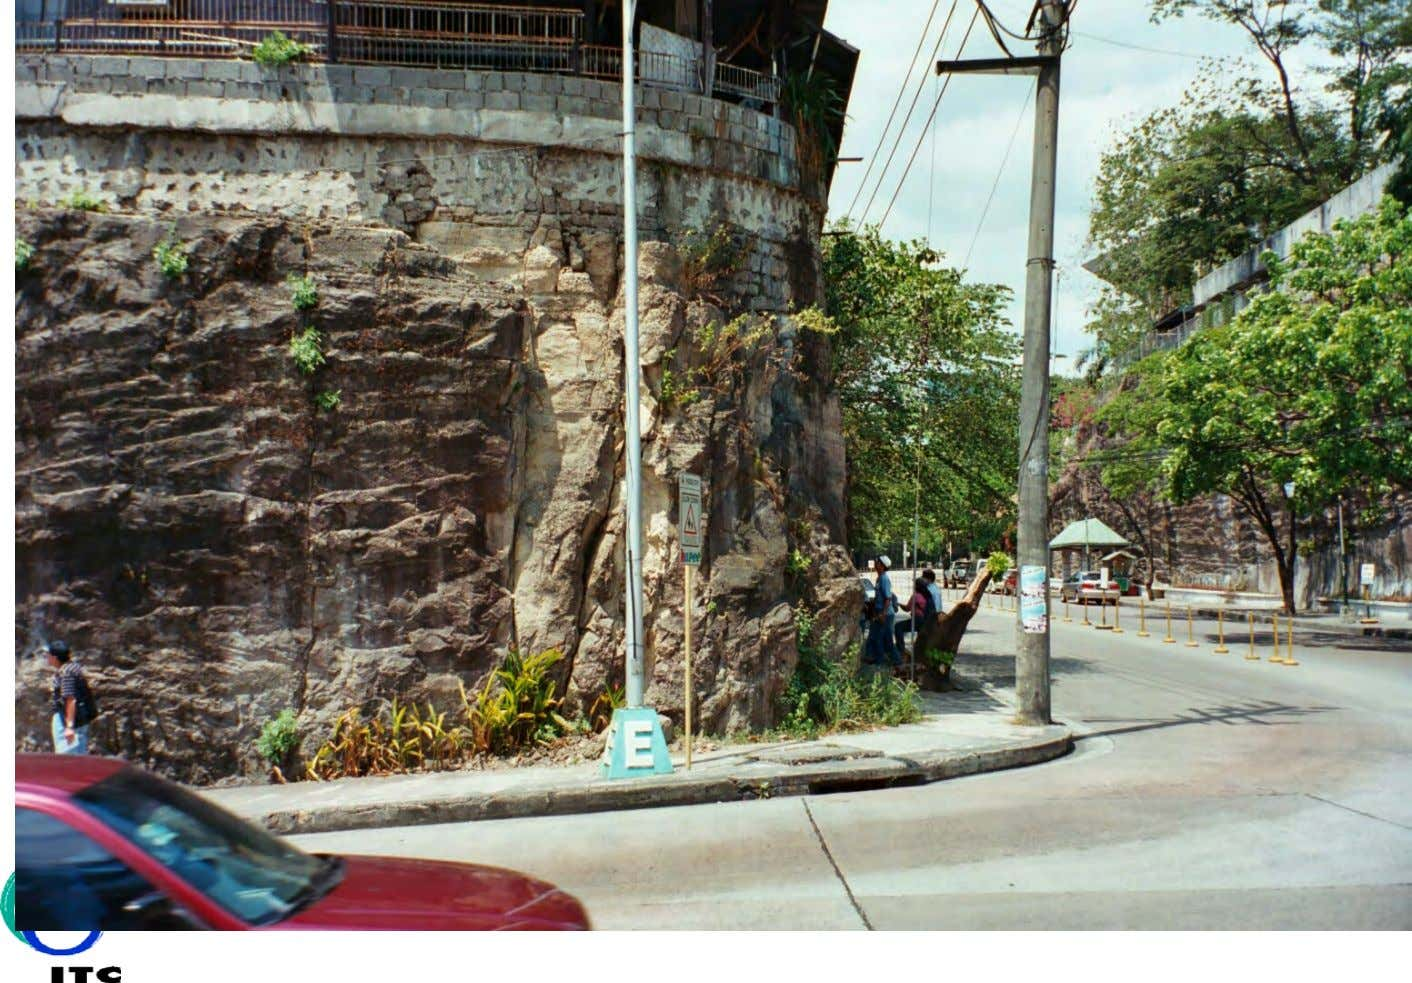 Failing slope in Manila, Philippines Seoul, South Korea - classification deteriorating slope stability - Robert Hack